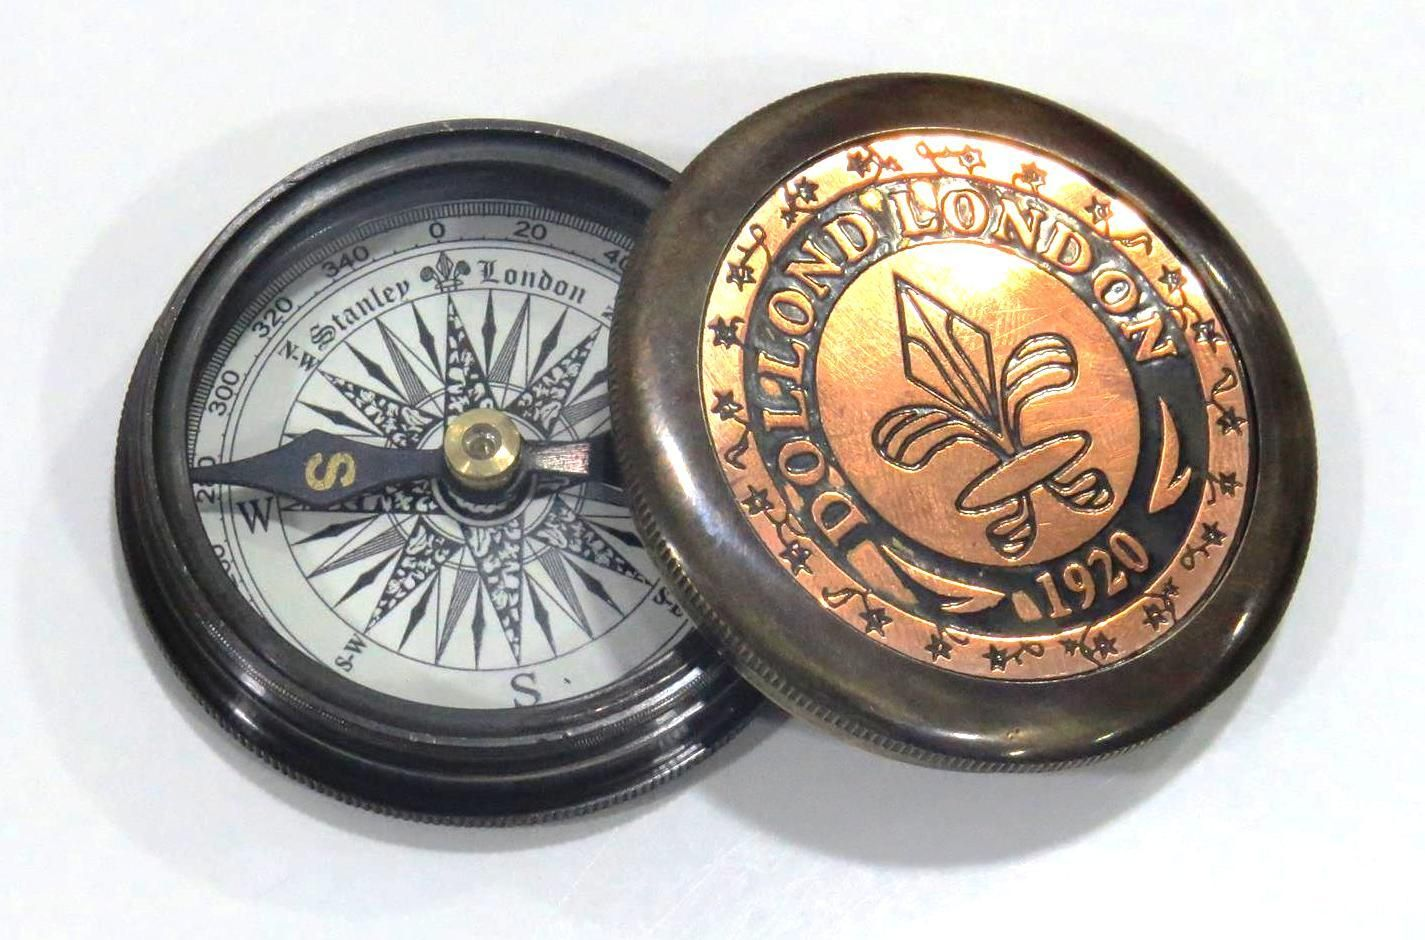 US Navy Brass Push Button Compass Nautical Fully Functional Pocket Compass Decor